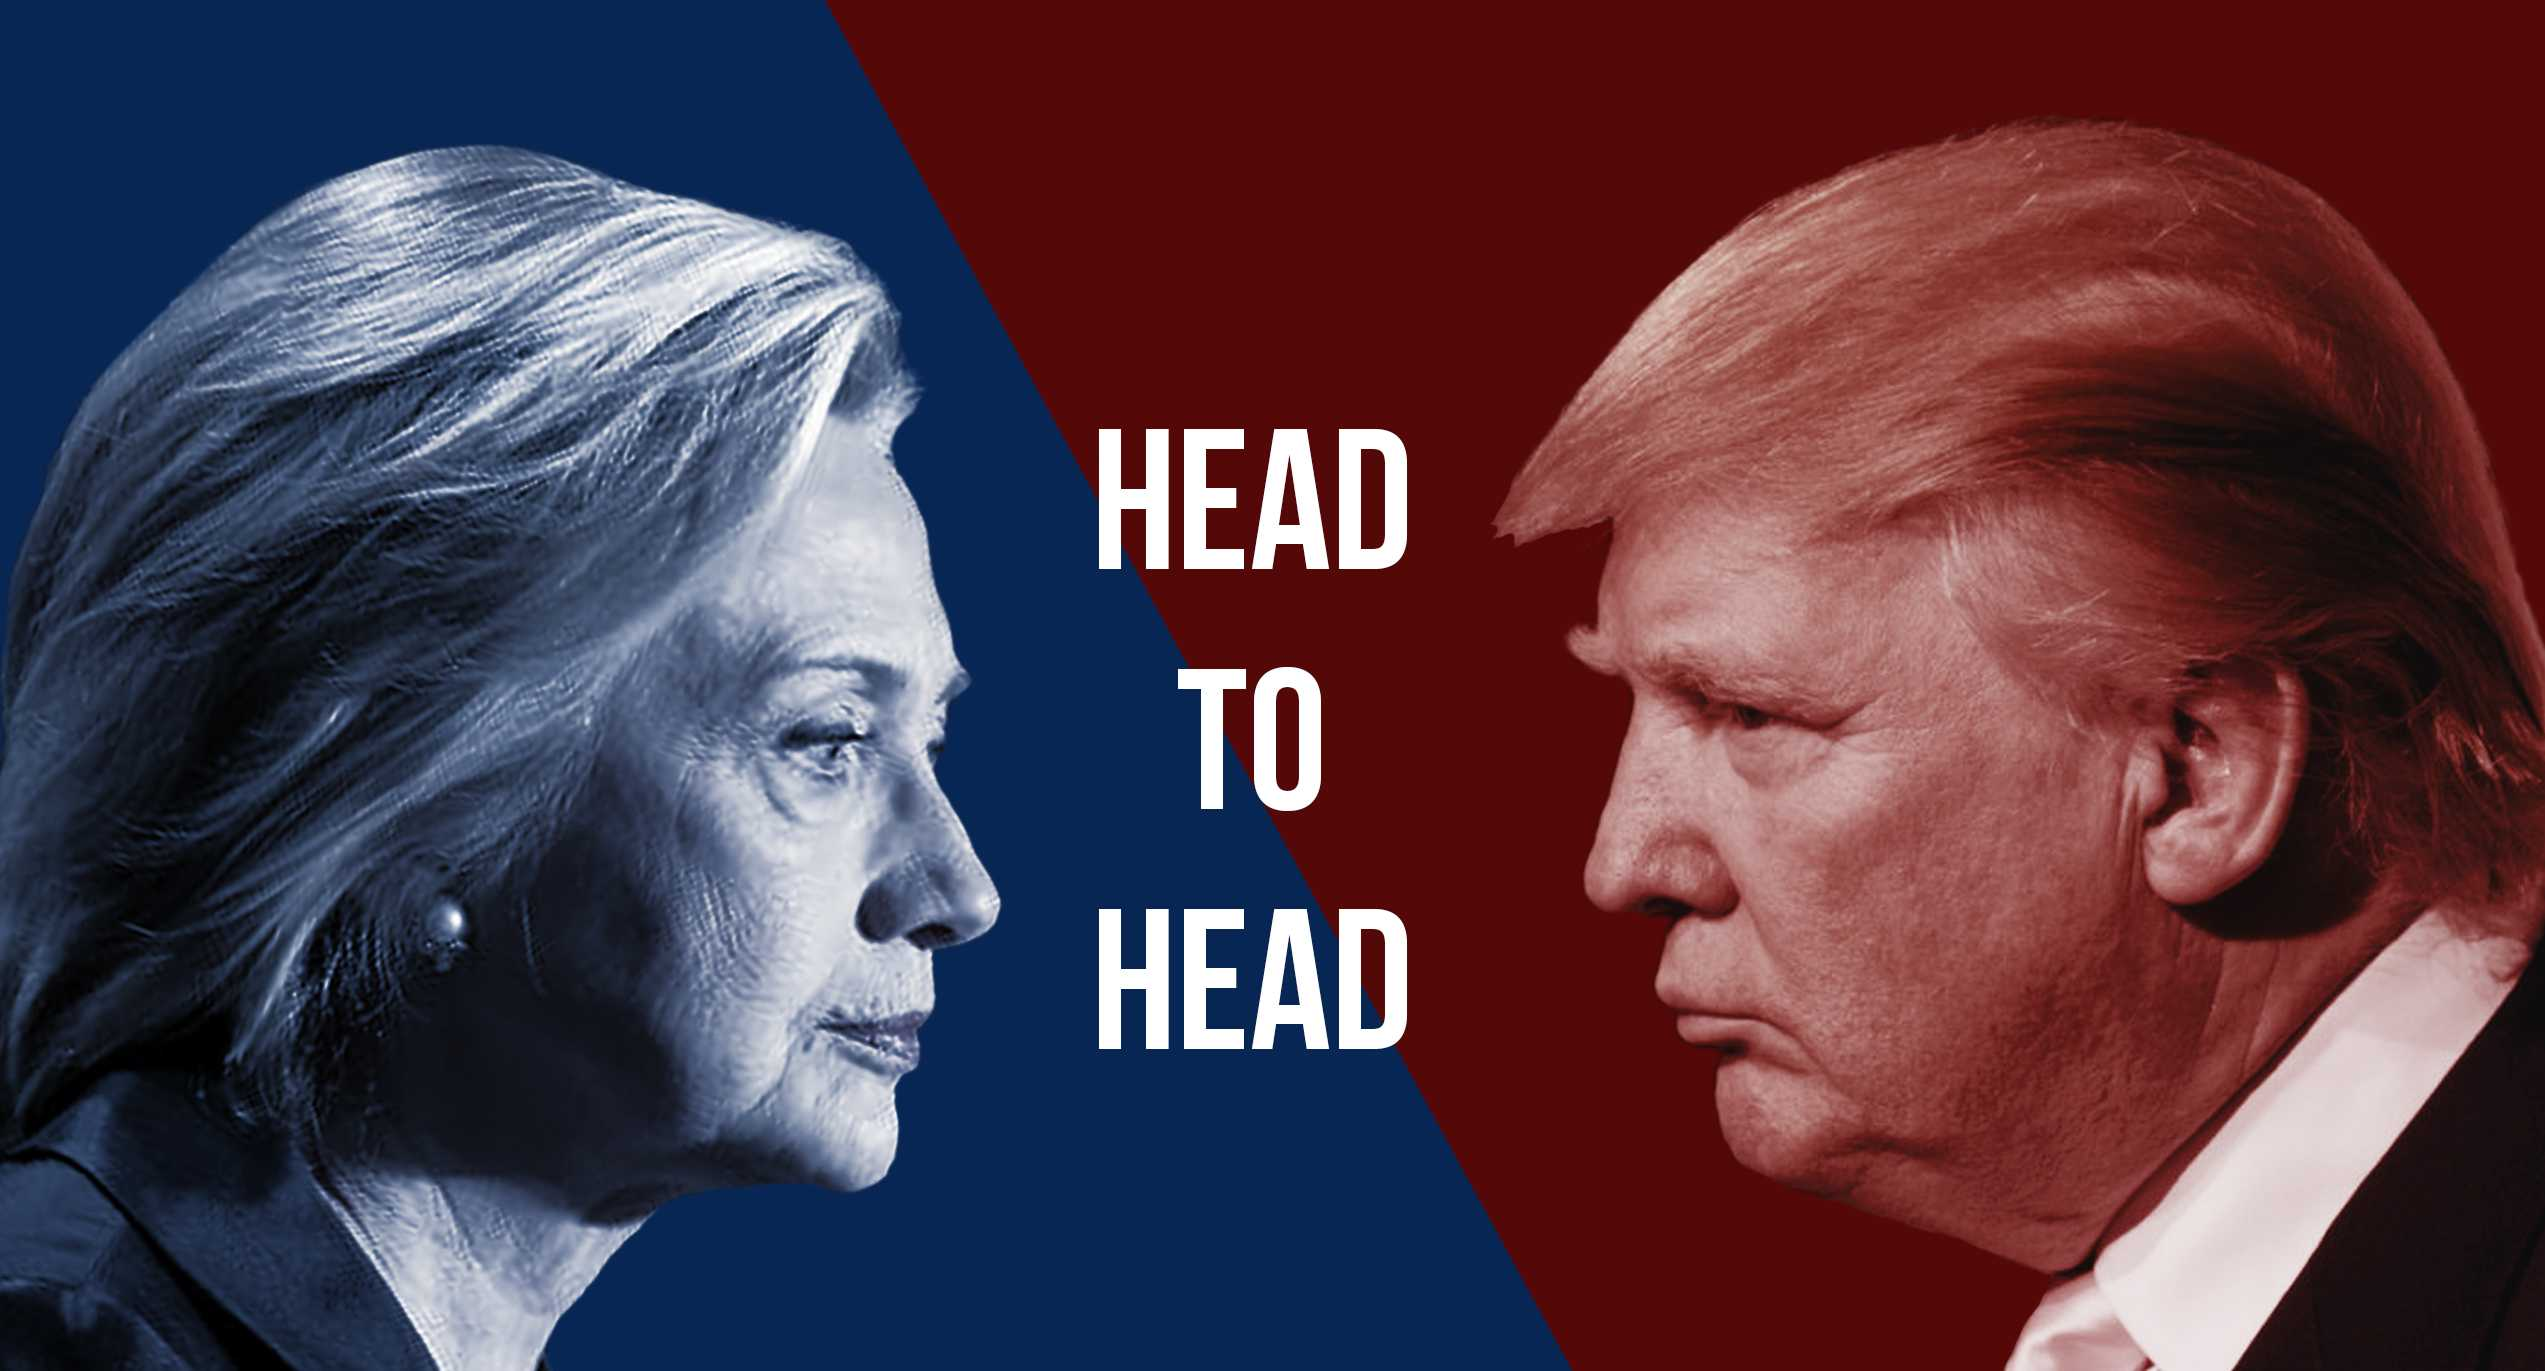 Clinton vs Trump – What Are Their Views on the Big Issues?